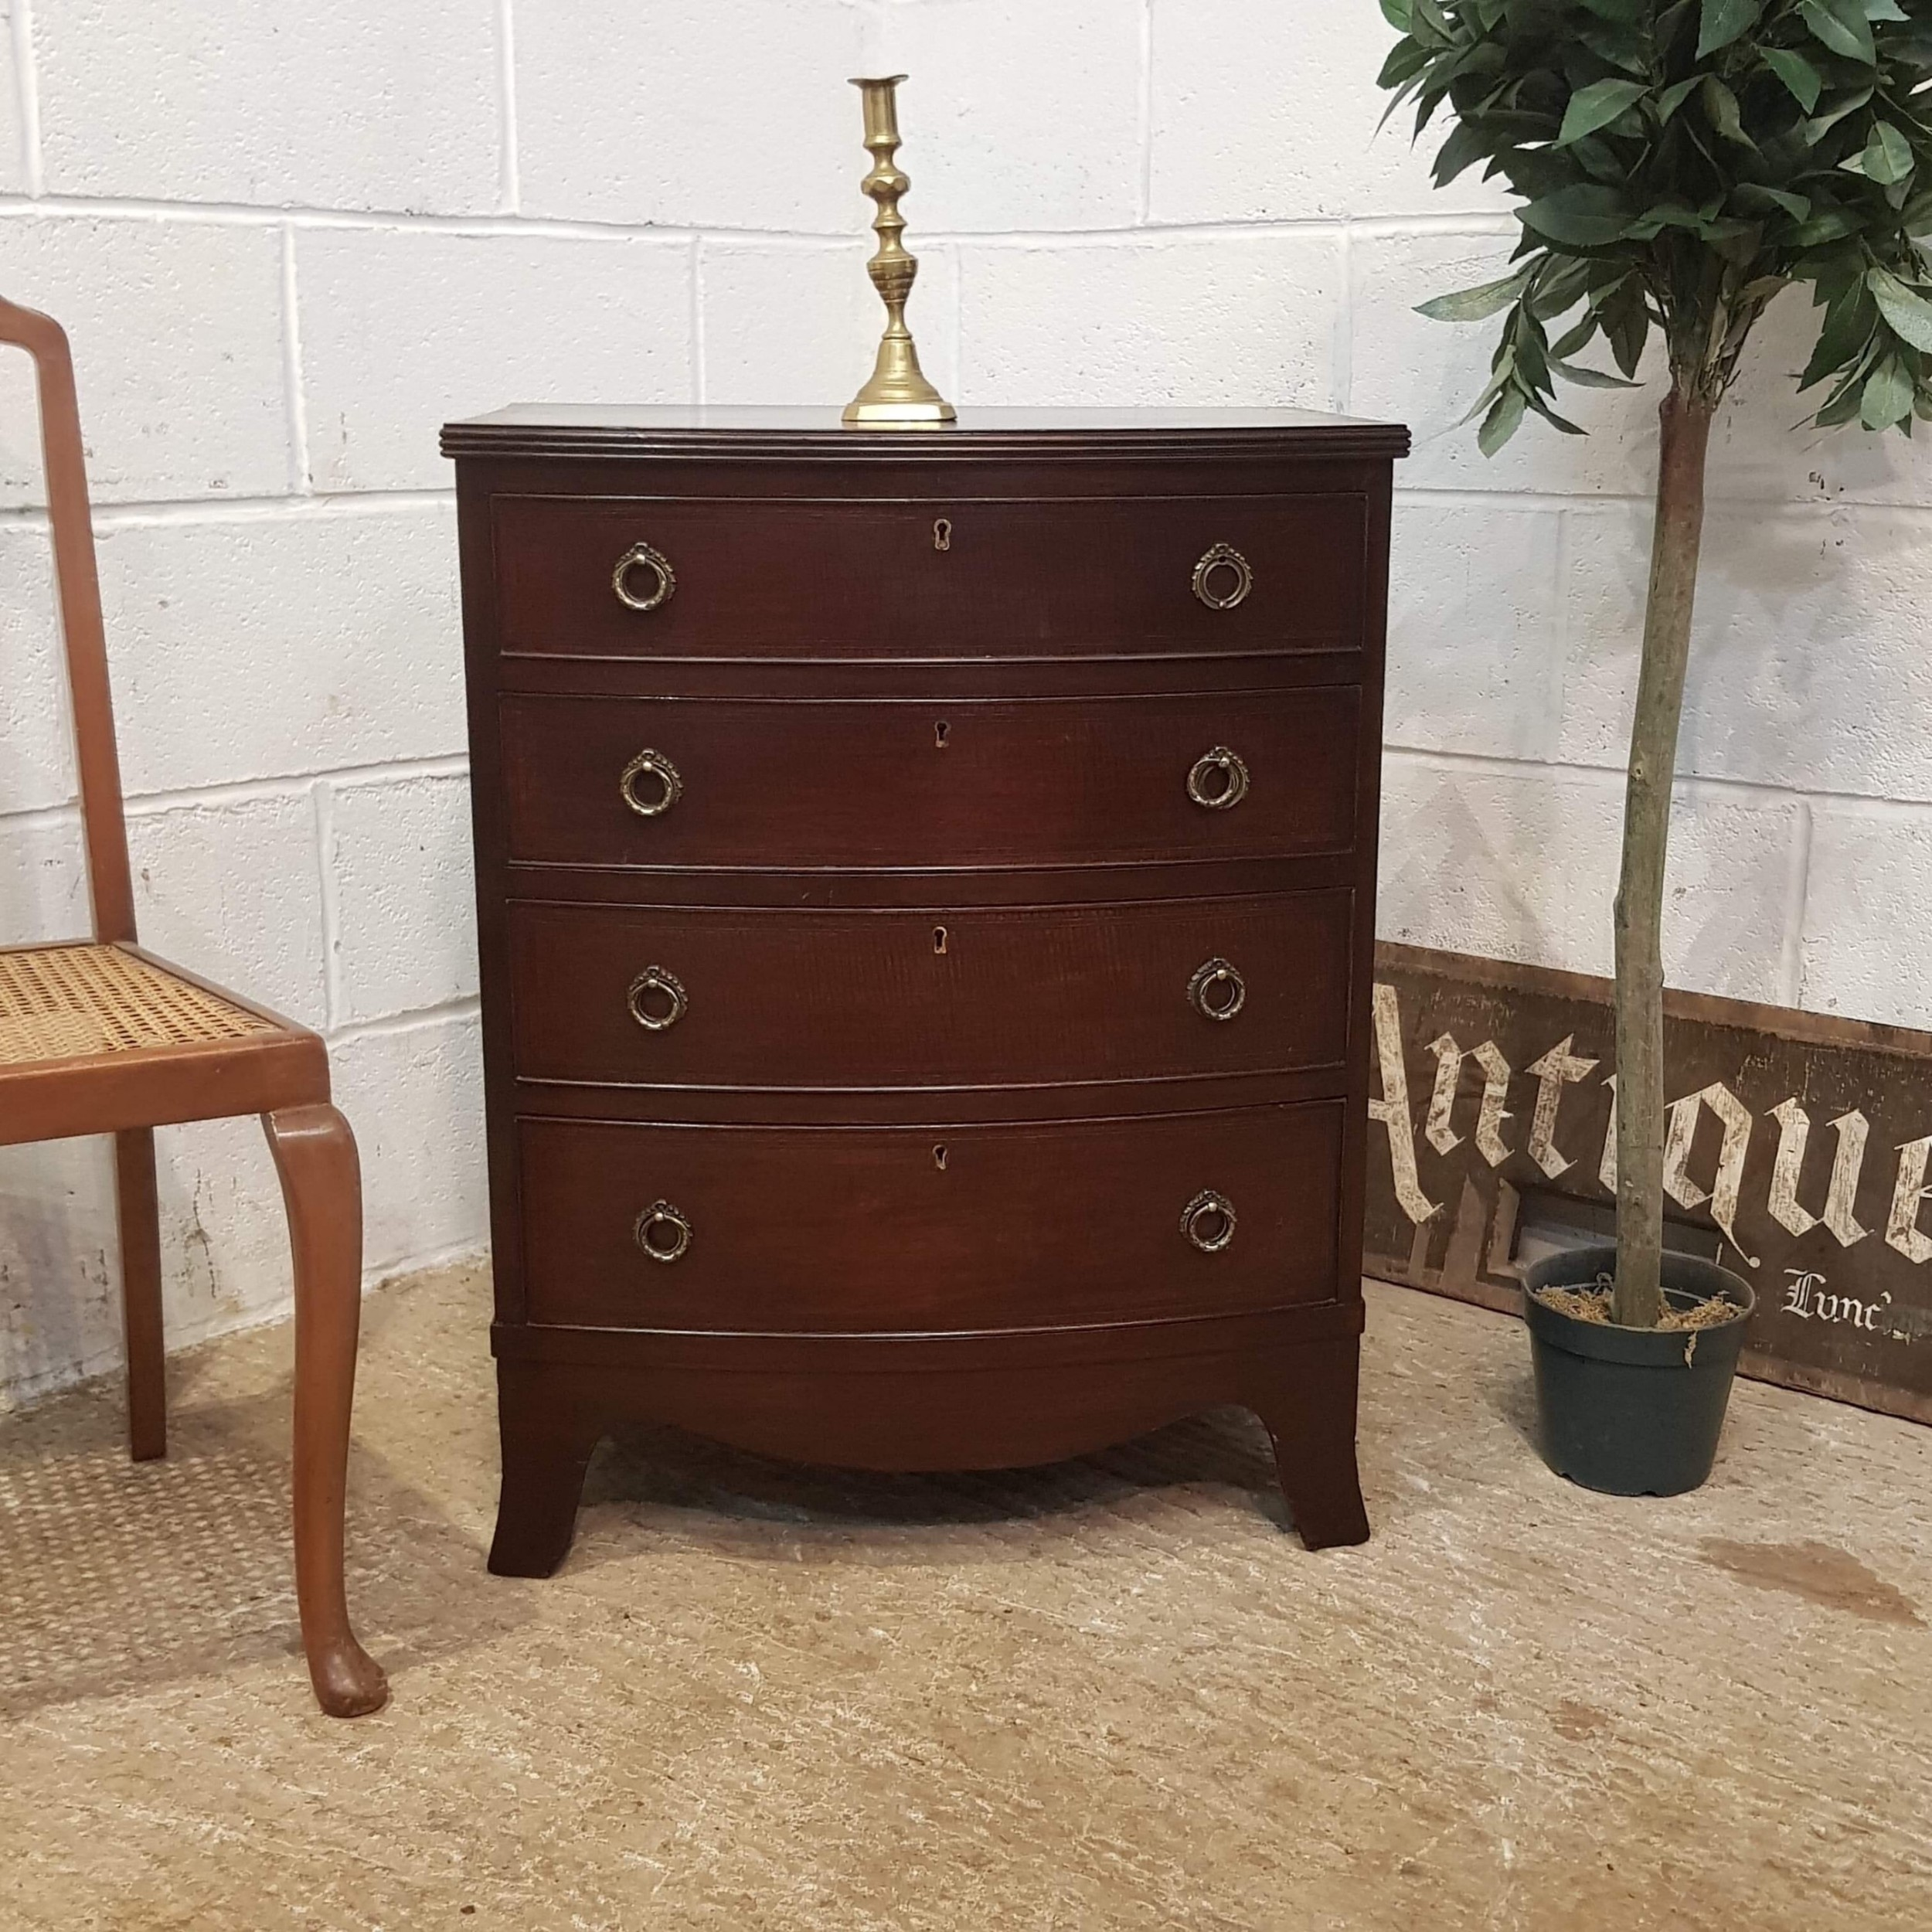 antique edwardian mahogany small bow front chest of drawers c1900